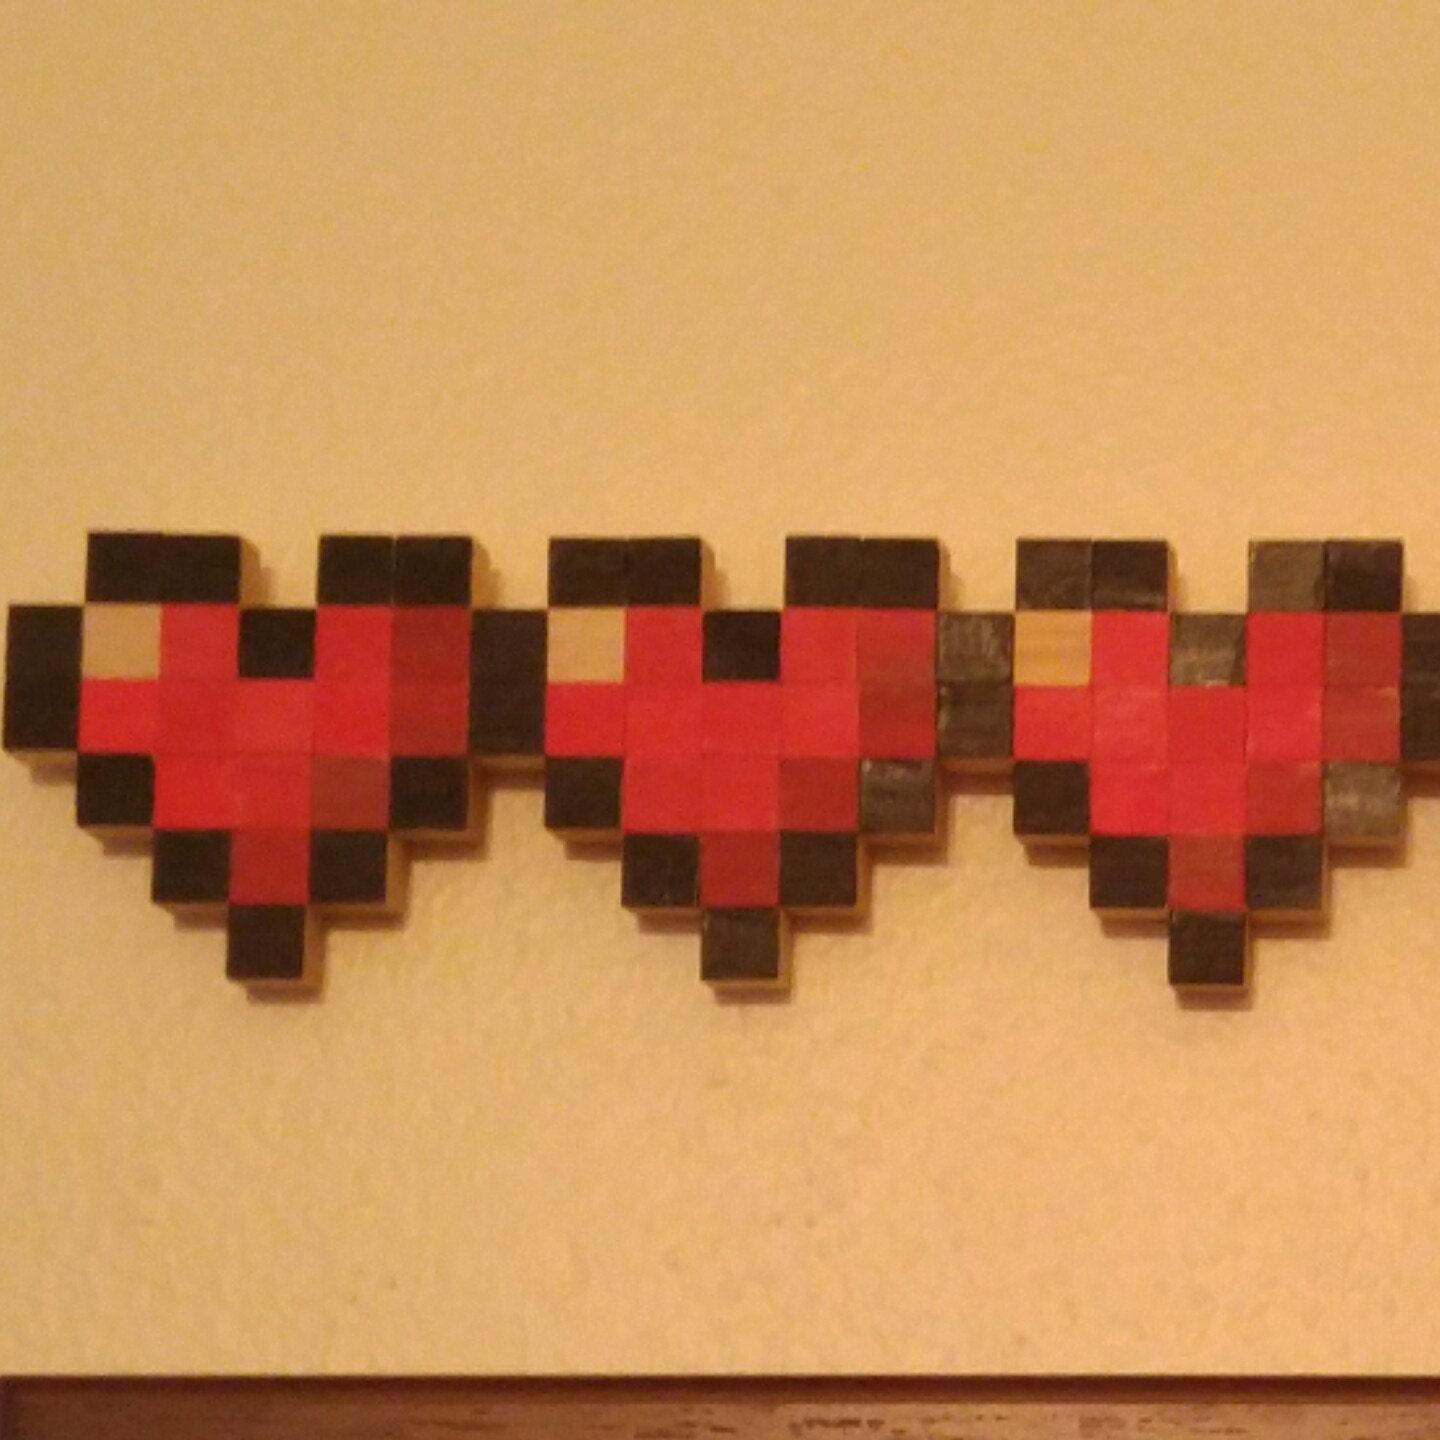 The Legend of Zelda 8 Bit Rupee Pixel Wall Art